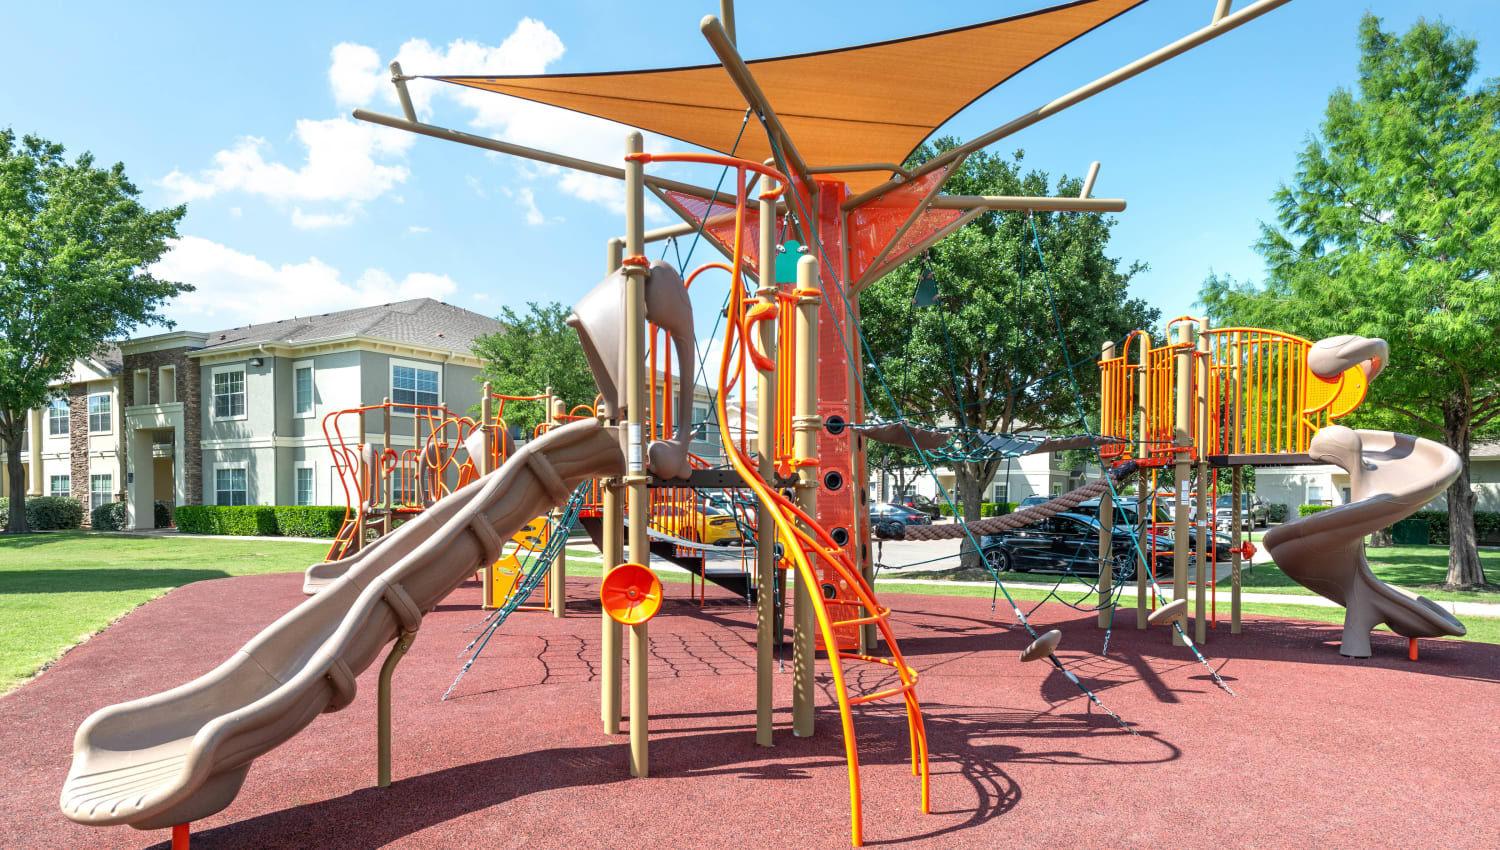 State-of-the-art children's playground at Olympus Stone Glen in Keller, Texas